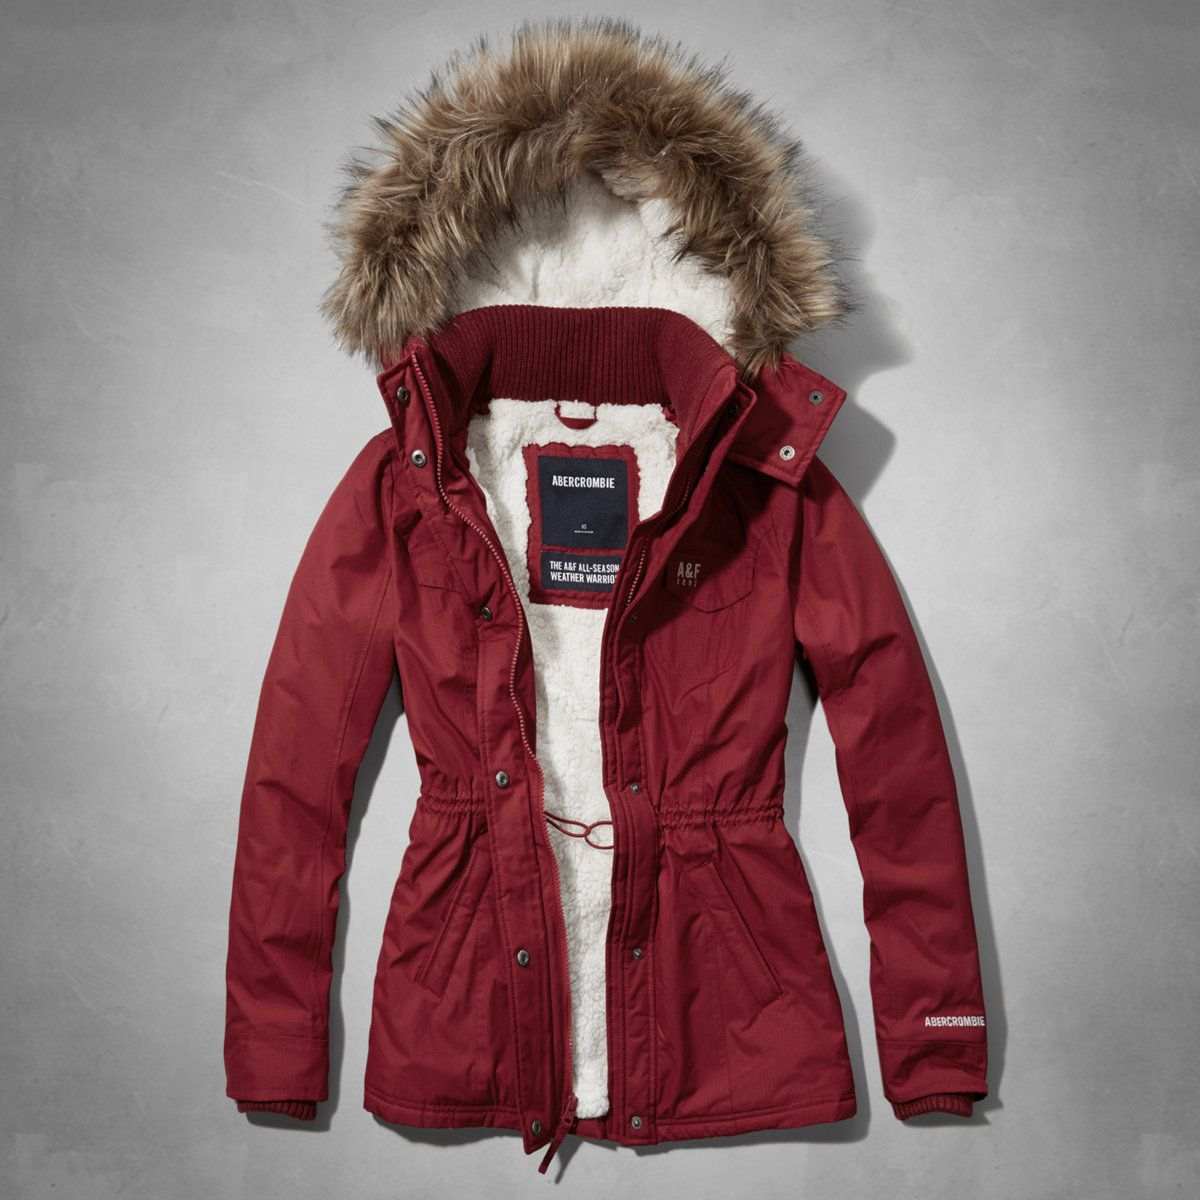 Abercrombie Accessories Abercrombie Accessories Abercrombie Womens Abercrombie Couple Abercrombie Womens: Womens A&F Sherpa Lined Weather Warrior Jacket